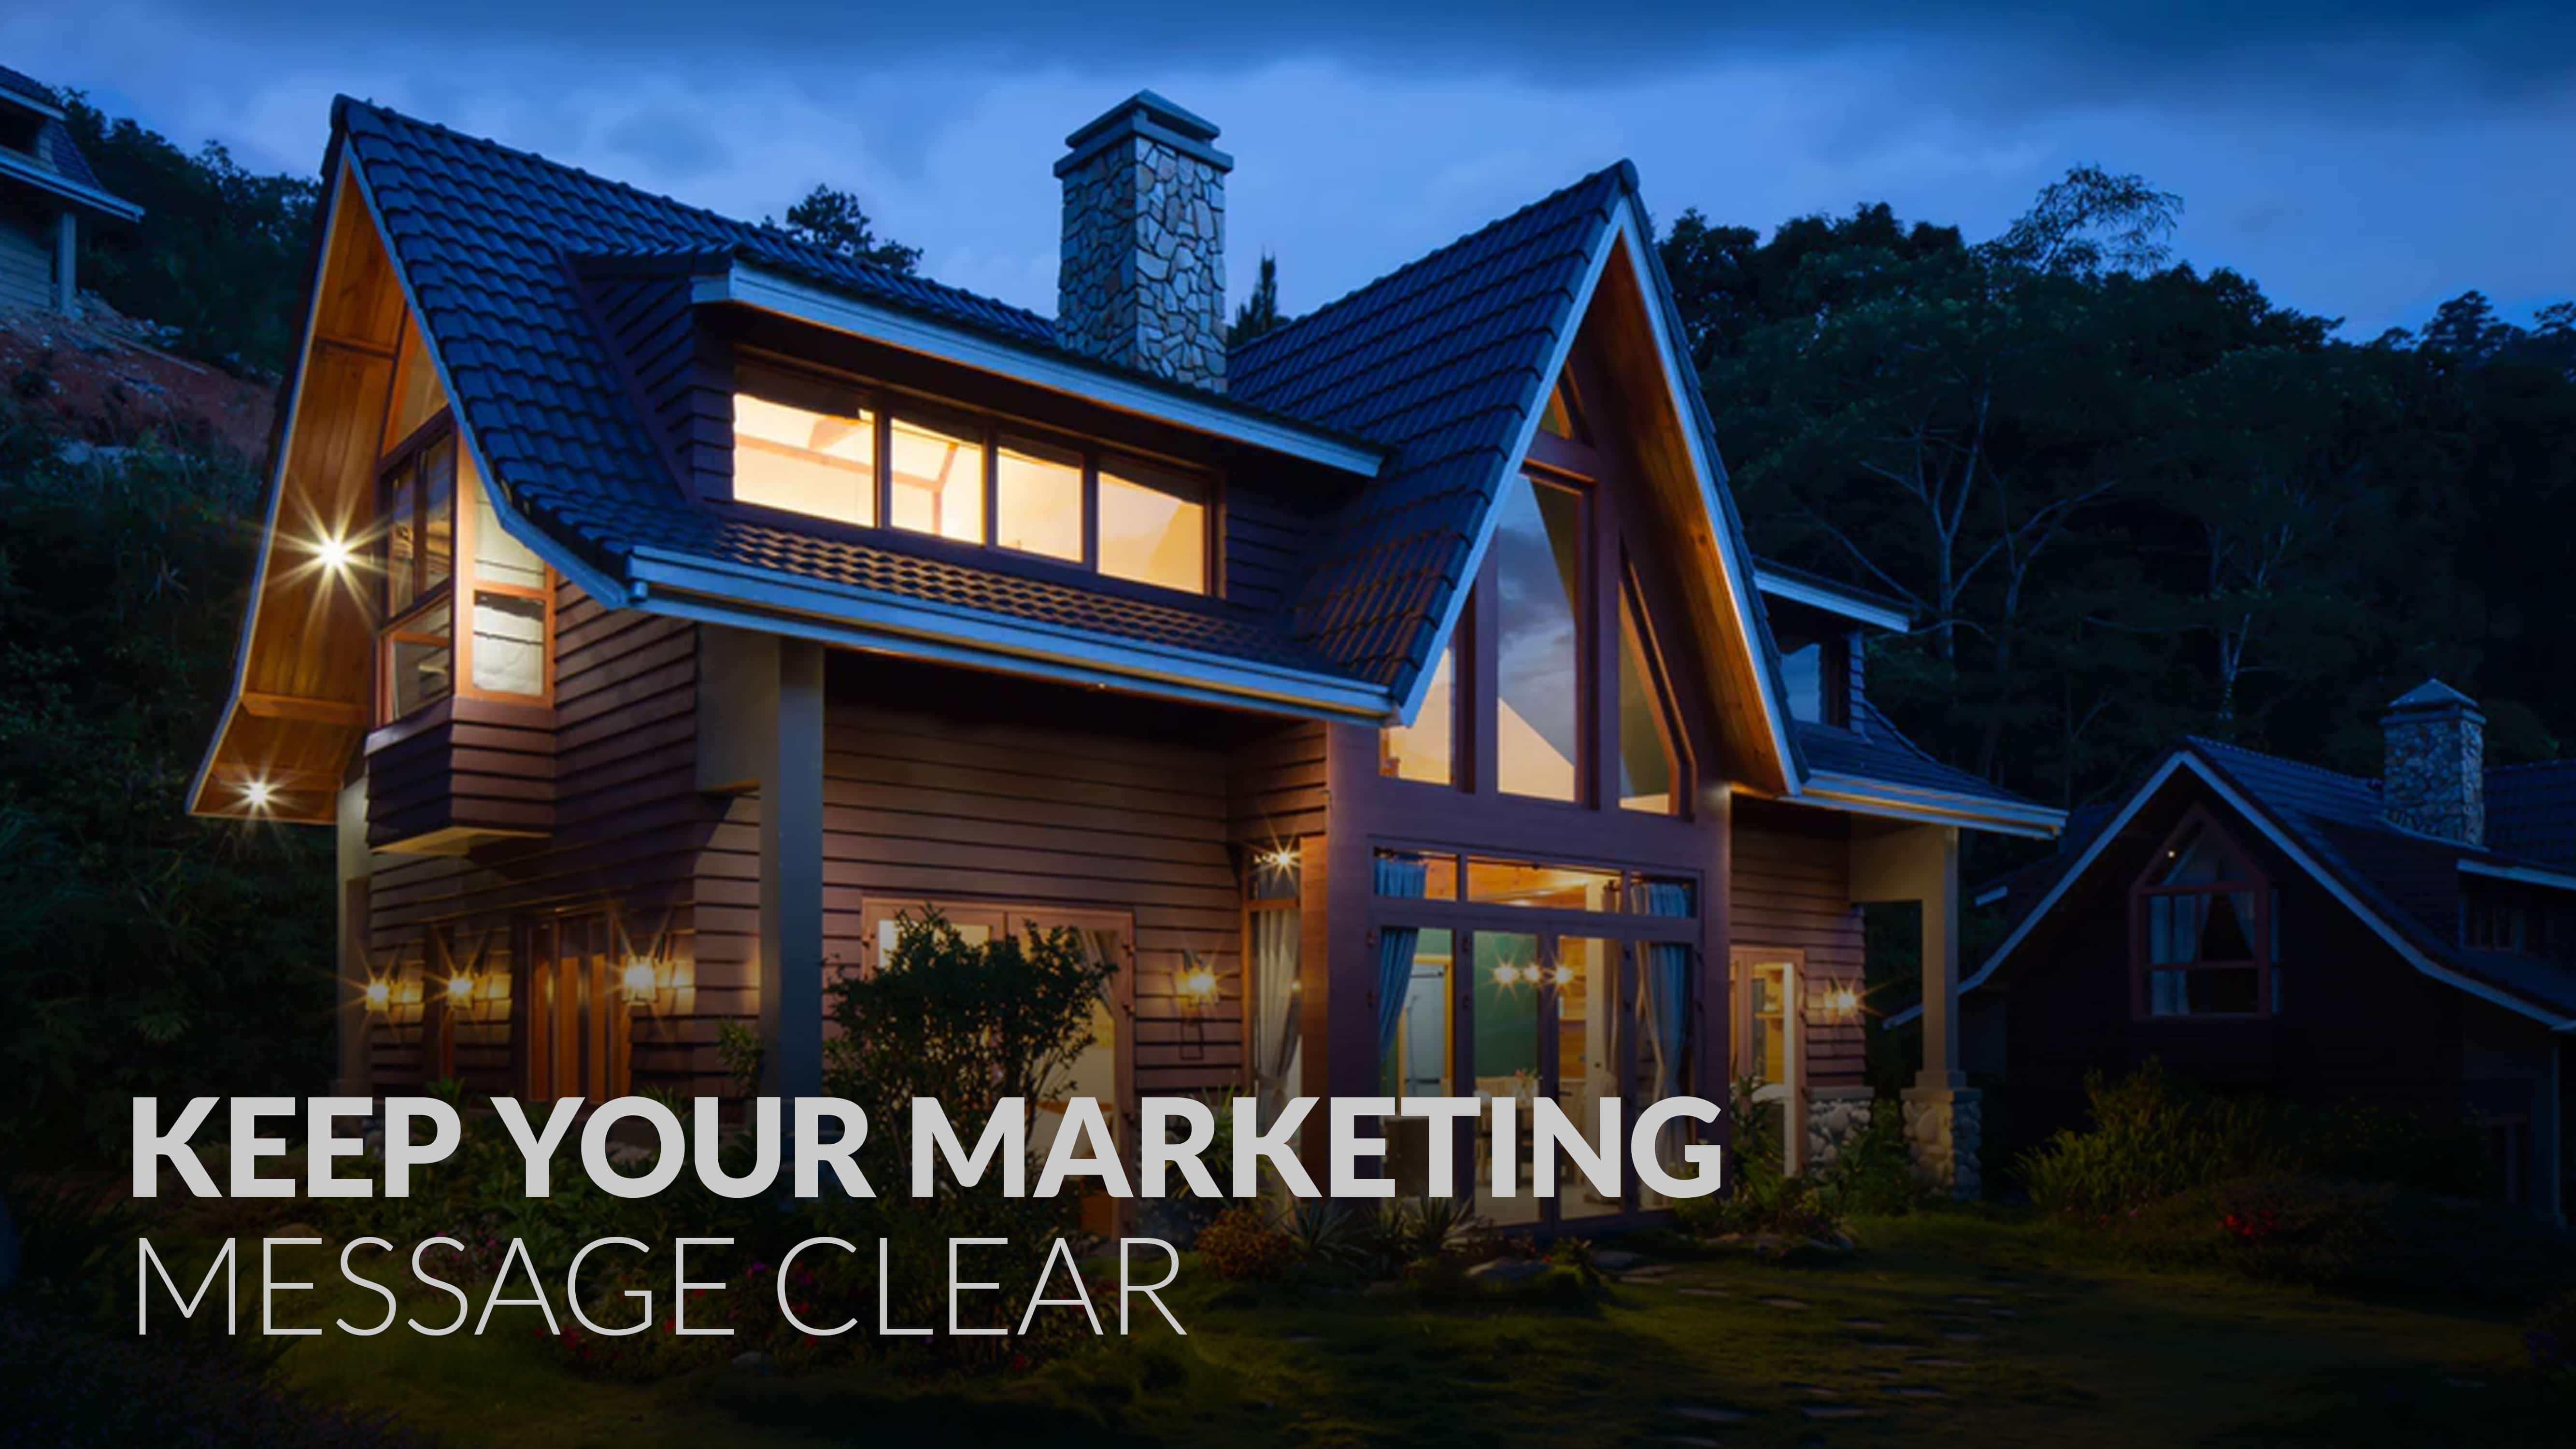 Keep your marketing message clear